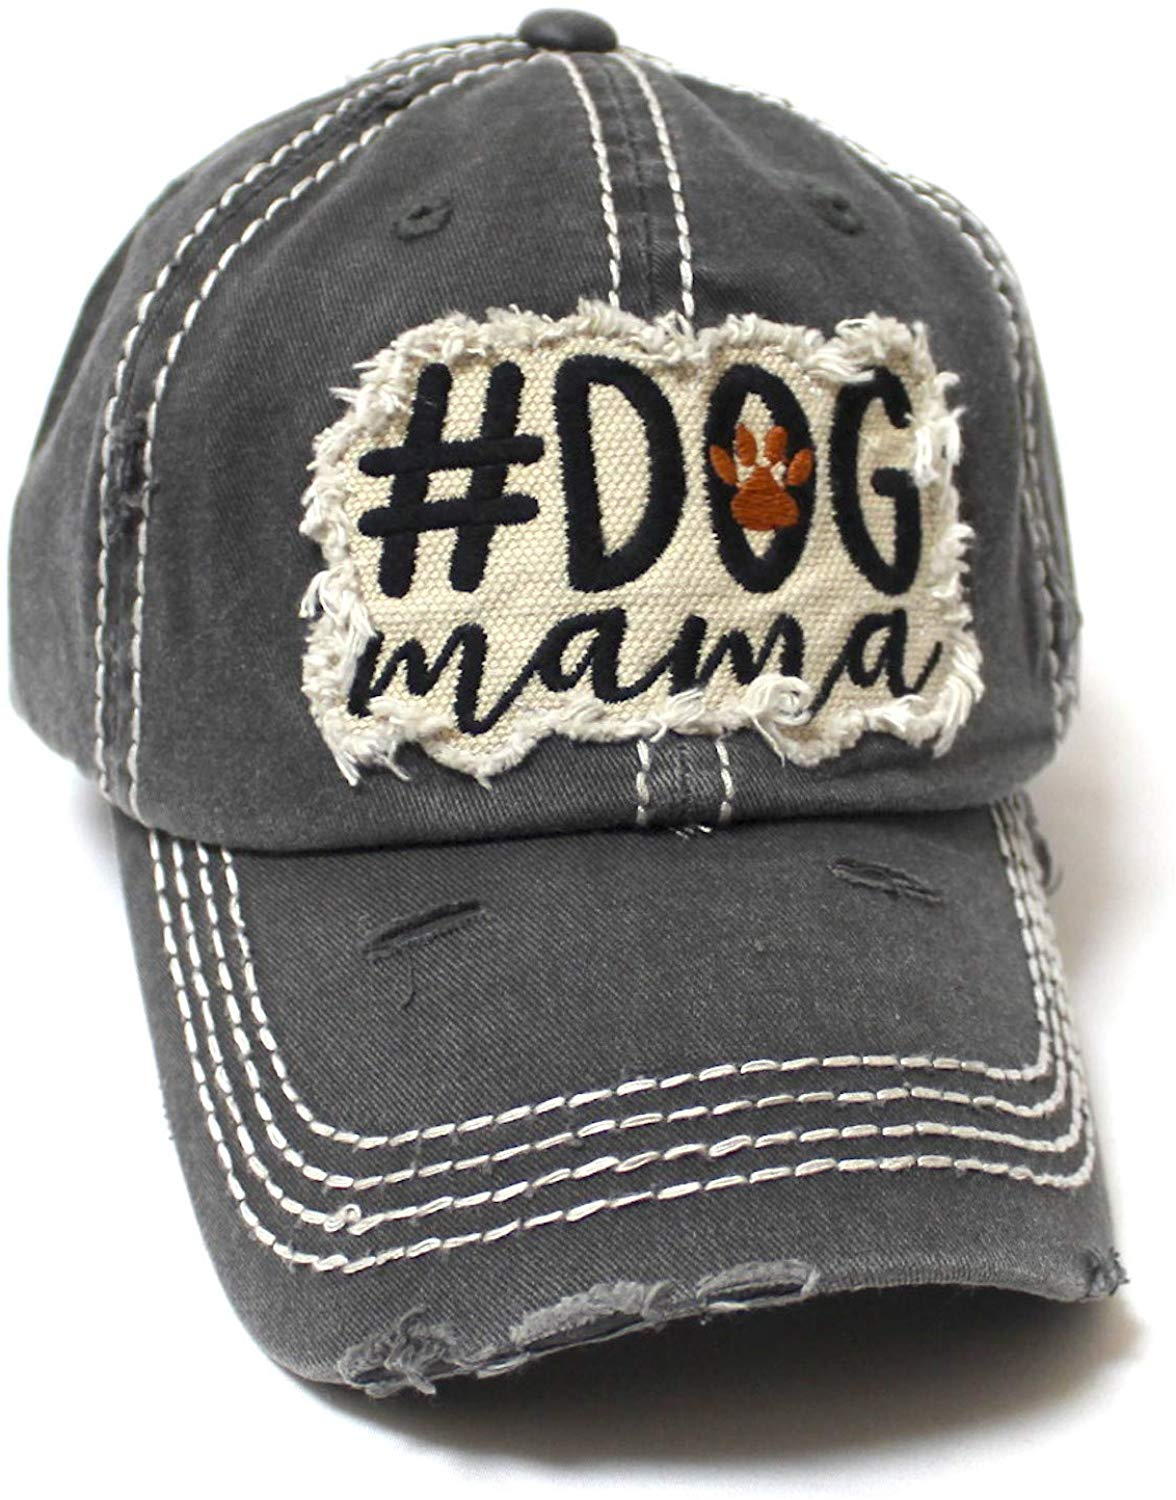 Women's Ballcap #Dog Mama Paw Print Patch Embroidery Unconstructed Hat, Vintage Black - Caps 'N Vintage